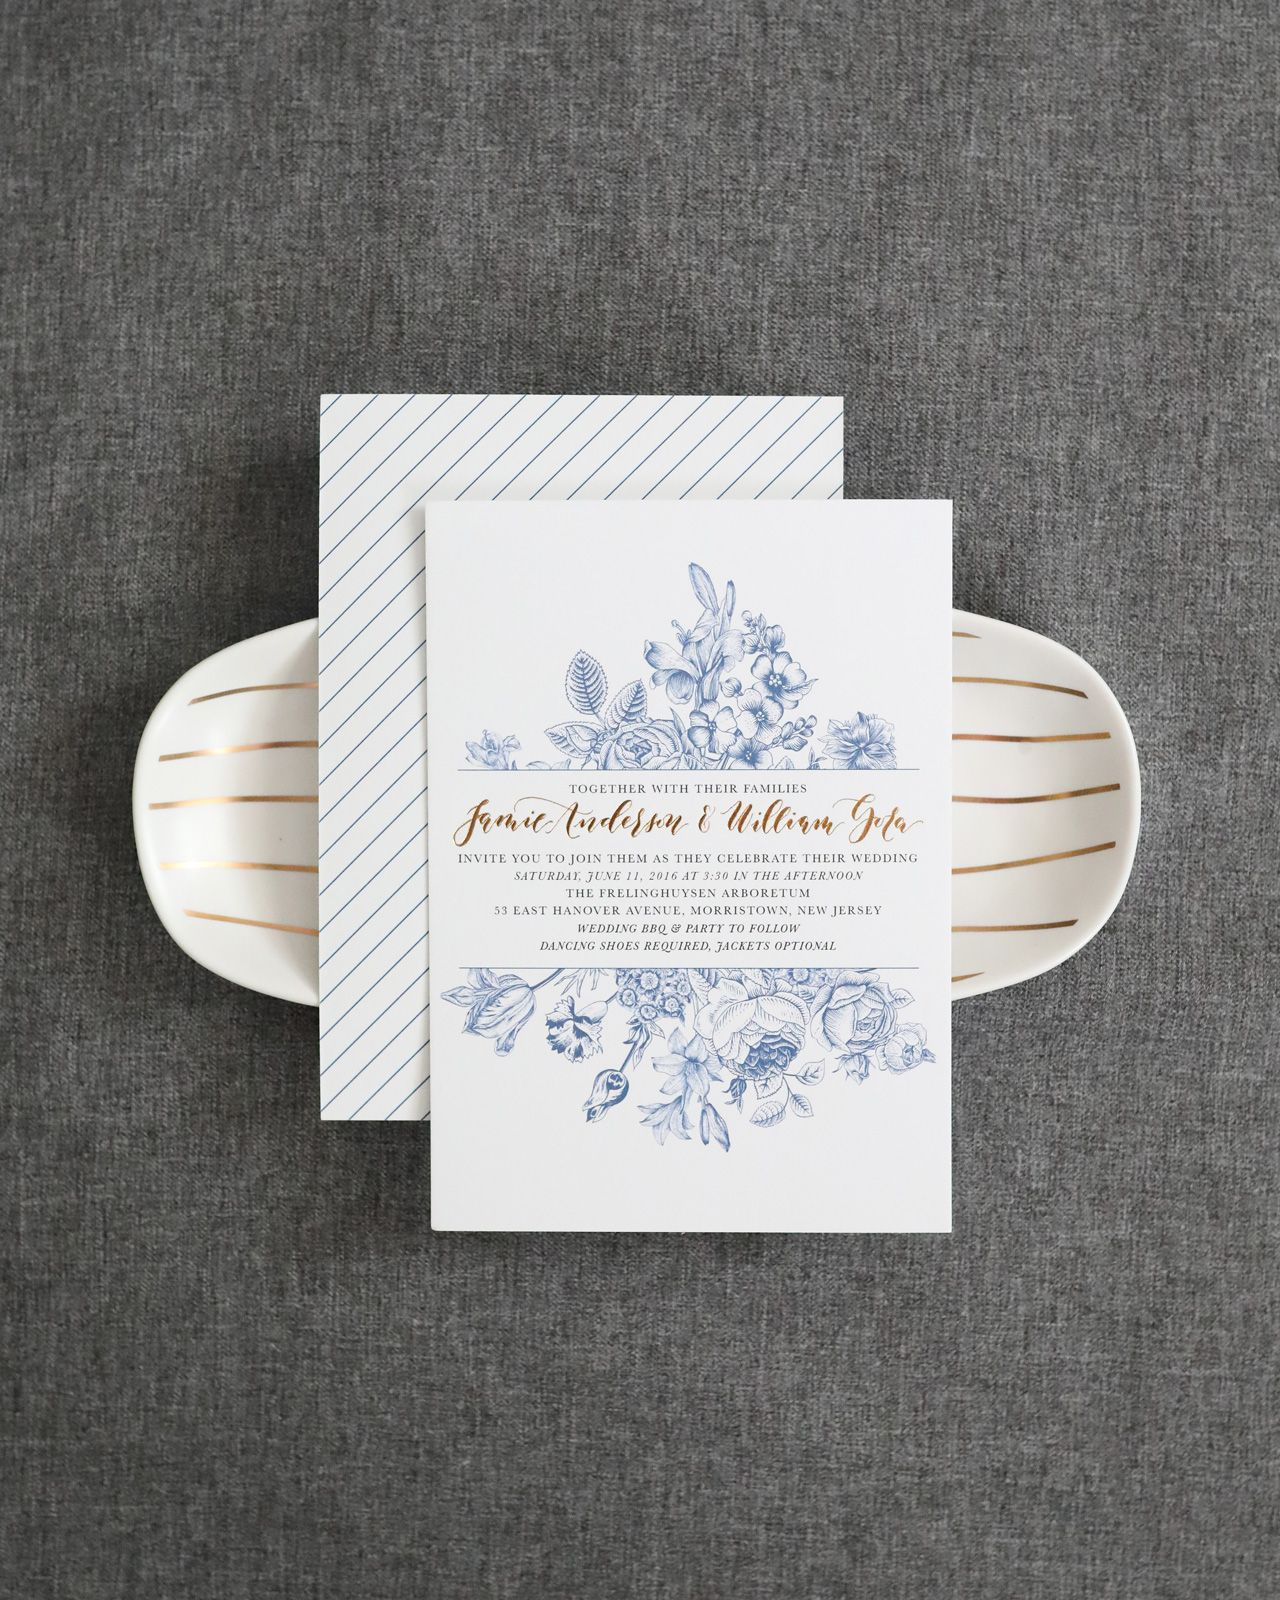 wildflower wedding invitation templates%0A free download cover letter templates